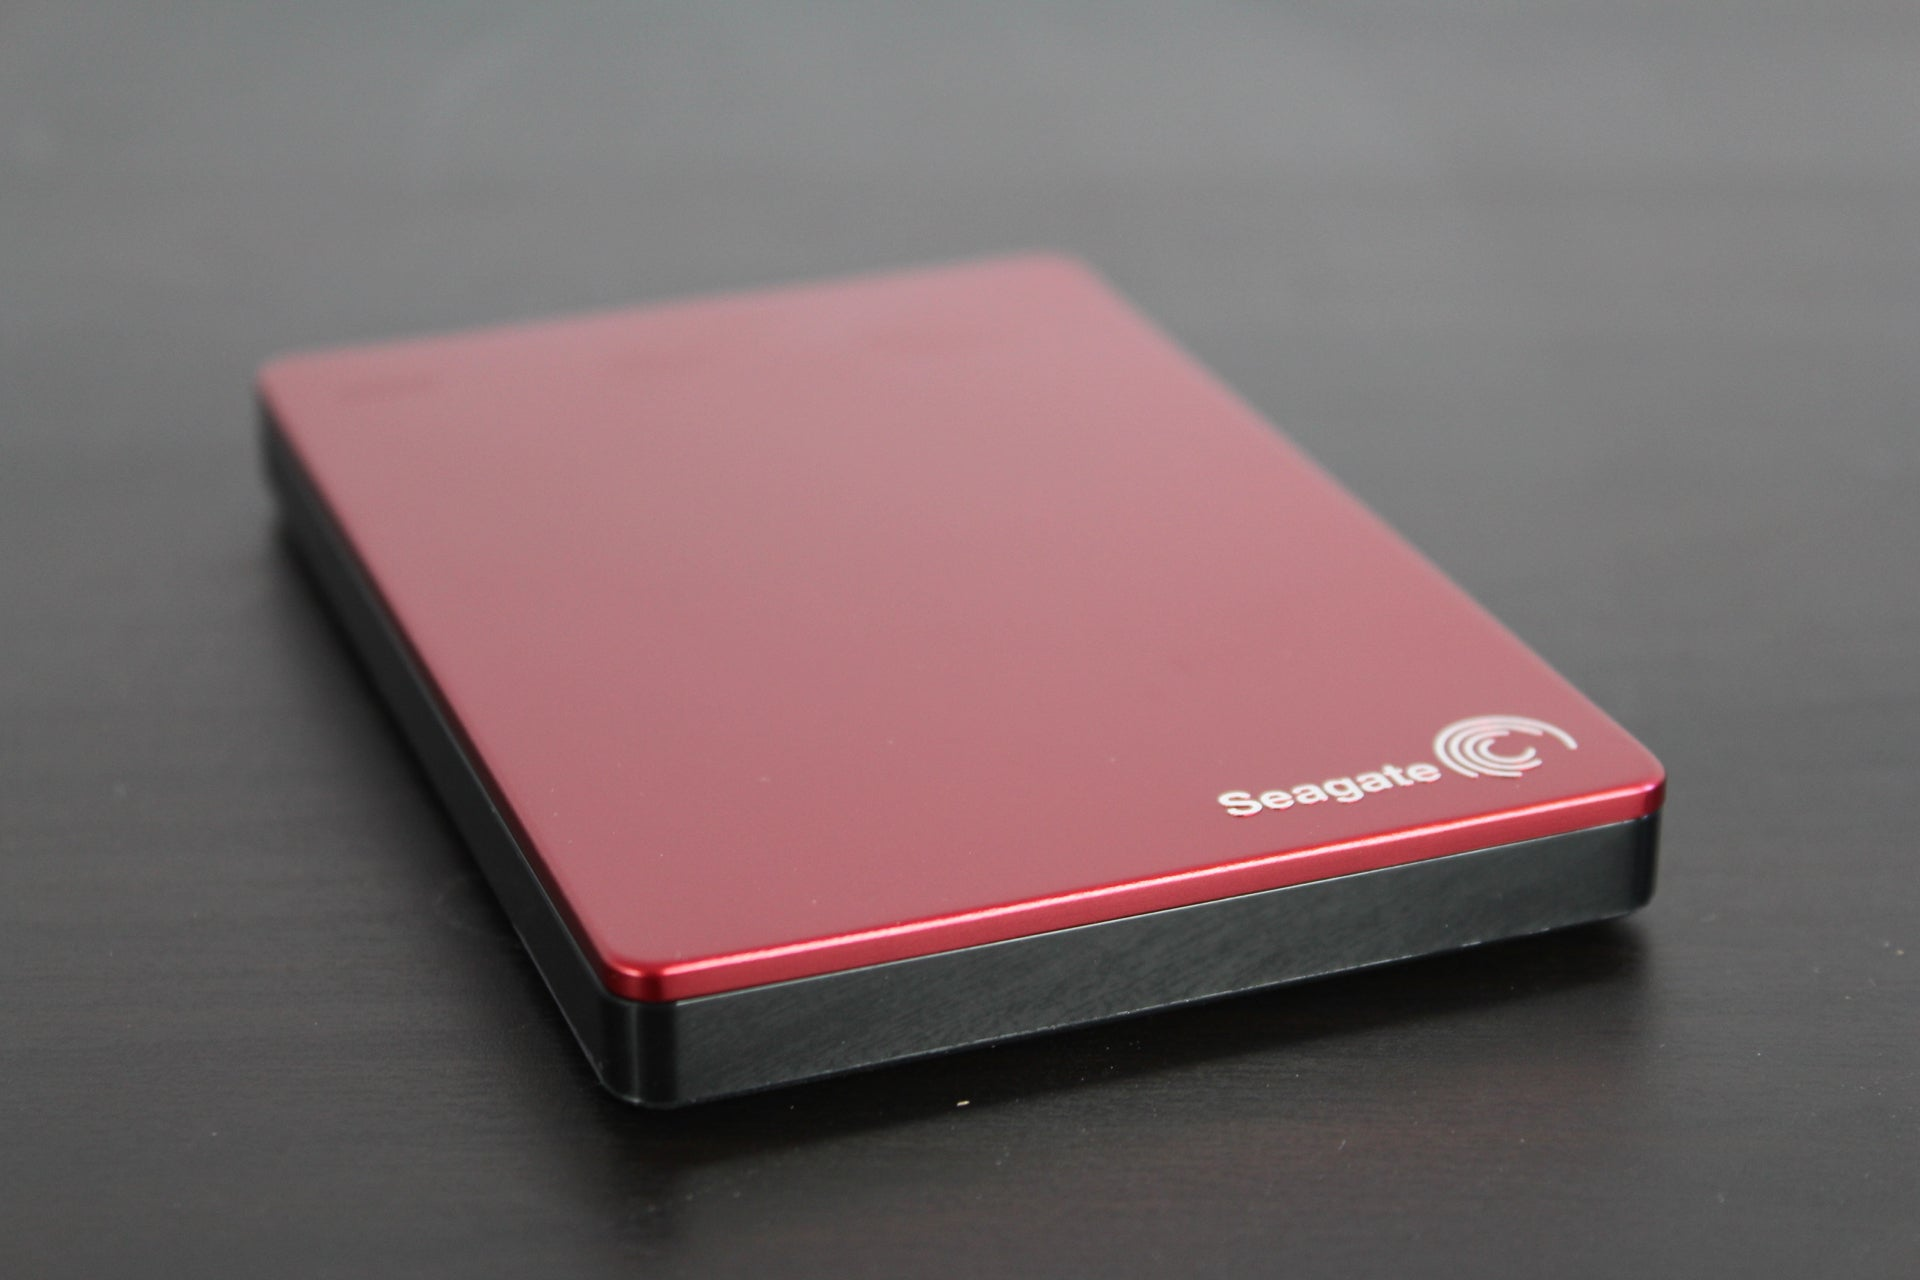 Storage Wars Seagate Planning A 16tb Hard Drive Launch In